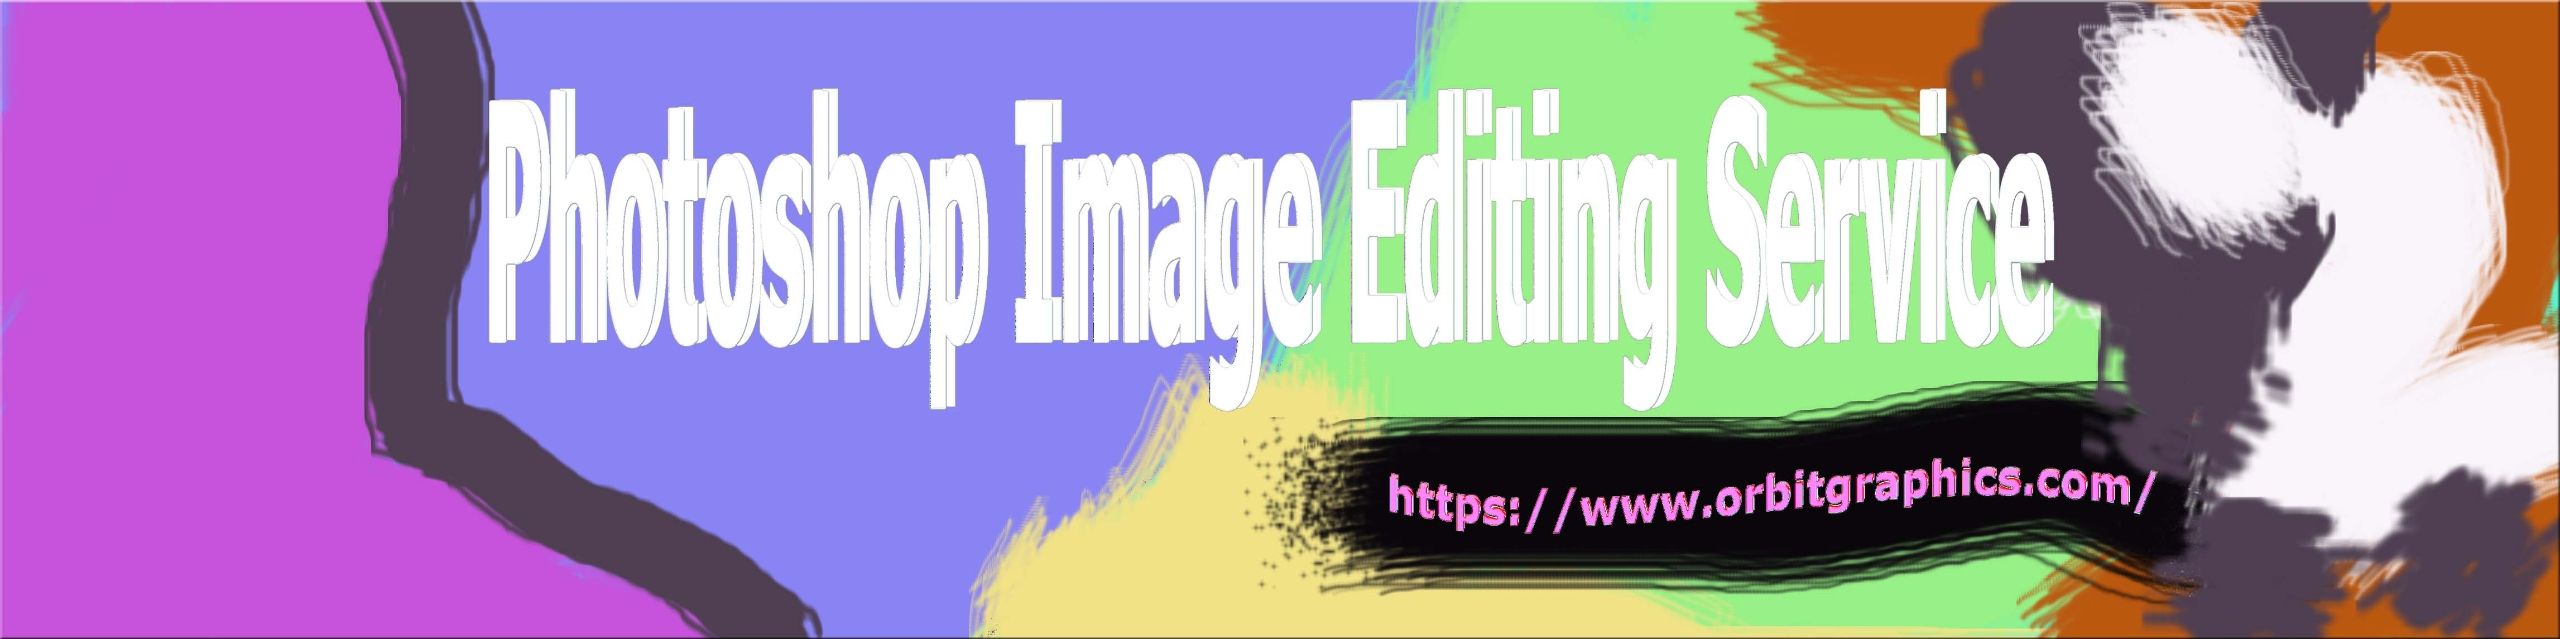 Image Editing Ser (@photoeditingservice) Cover Image